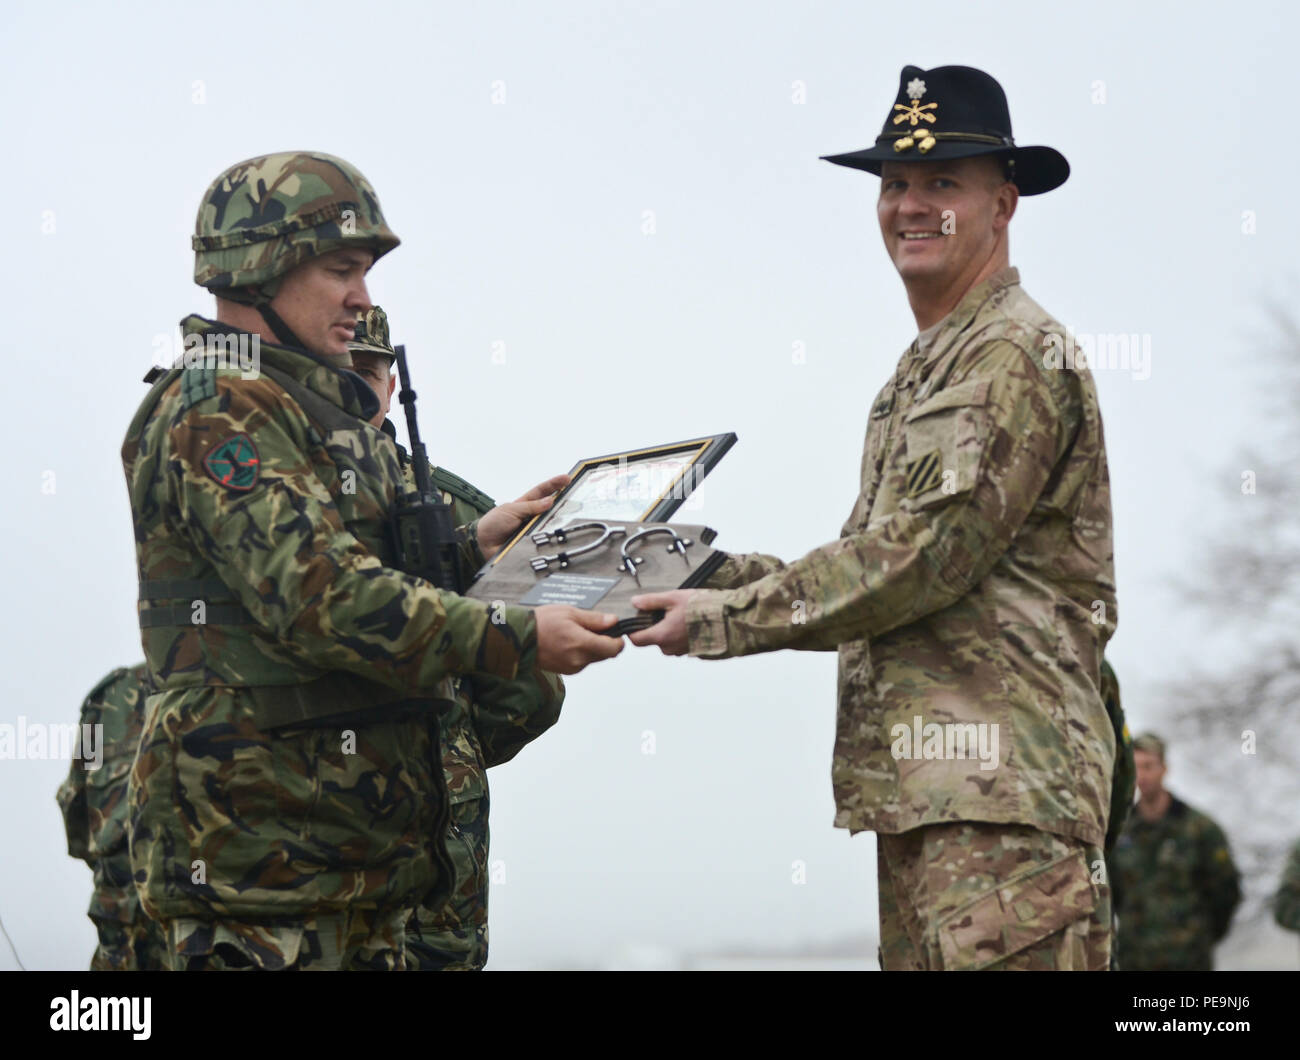 U.S. Army Lt. Col. Christopher Mahaffey (right), commander of 5th Squadron, 7th Cavalry Regiment, 3rd Infantry Division, stationed at Fort Stewart, Ga., presents gifts to Bulgarian Lt. Col. Tzvetan Kochankov (left), the commander of 1-61st Mechanized Battalion, during the closing ceremony of Exercise Peace Sentinel at Novo Selo Training Center, Bulgaria, Nov. 24, 2015. (U.S. Army photo by Staff Sgt. Steven M. Colvin/Released) - Stock Image